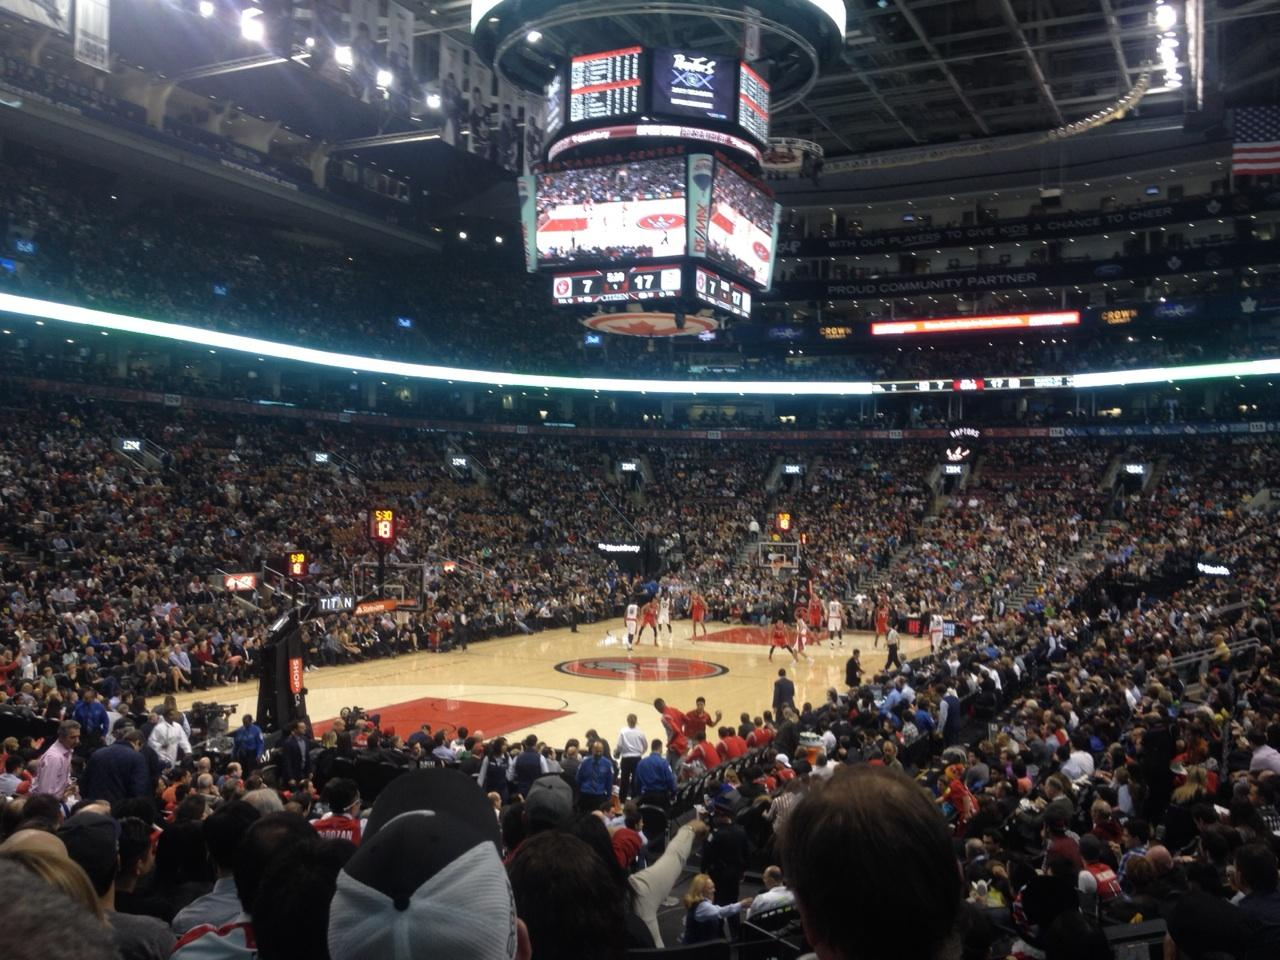 Toronto Raptors Seat View for Air Canada Centre Section 101, Row 15, Seat 3